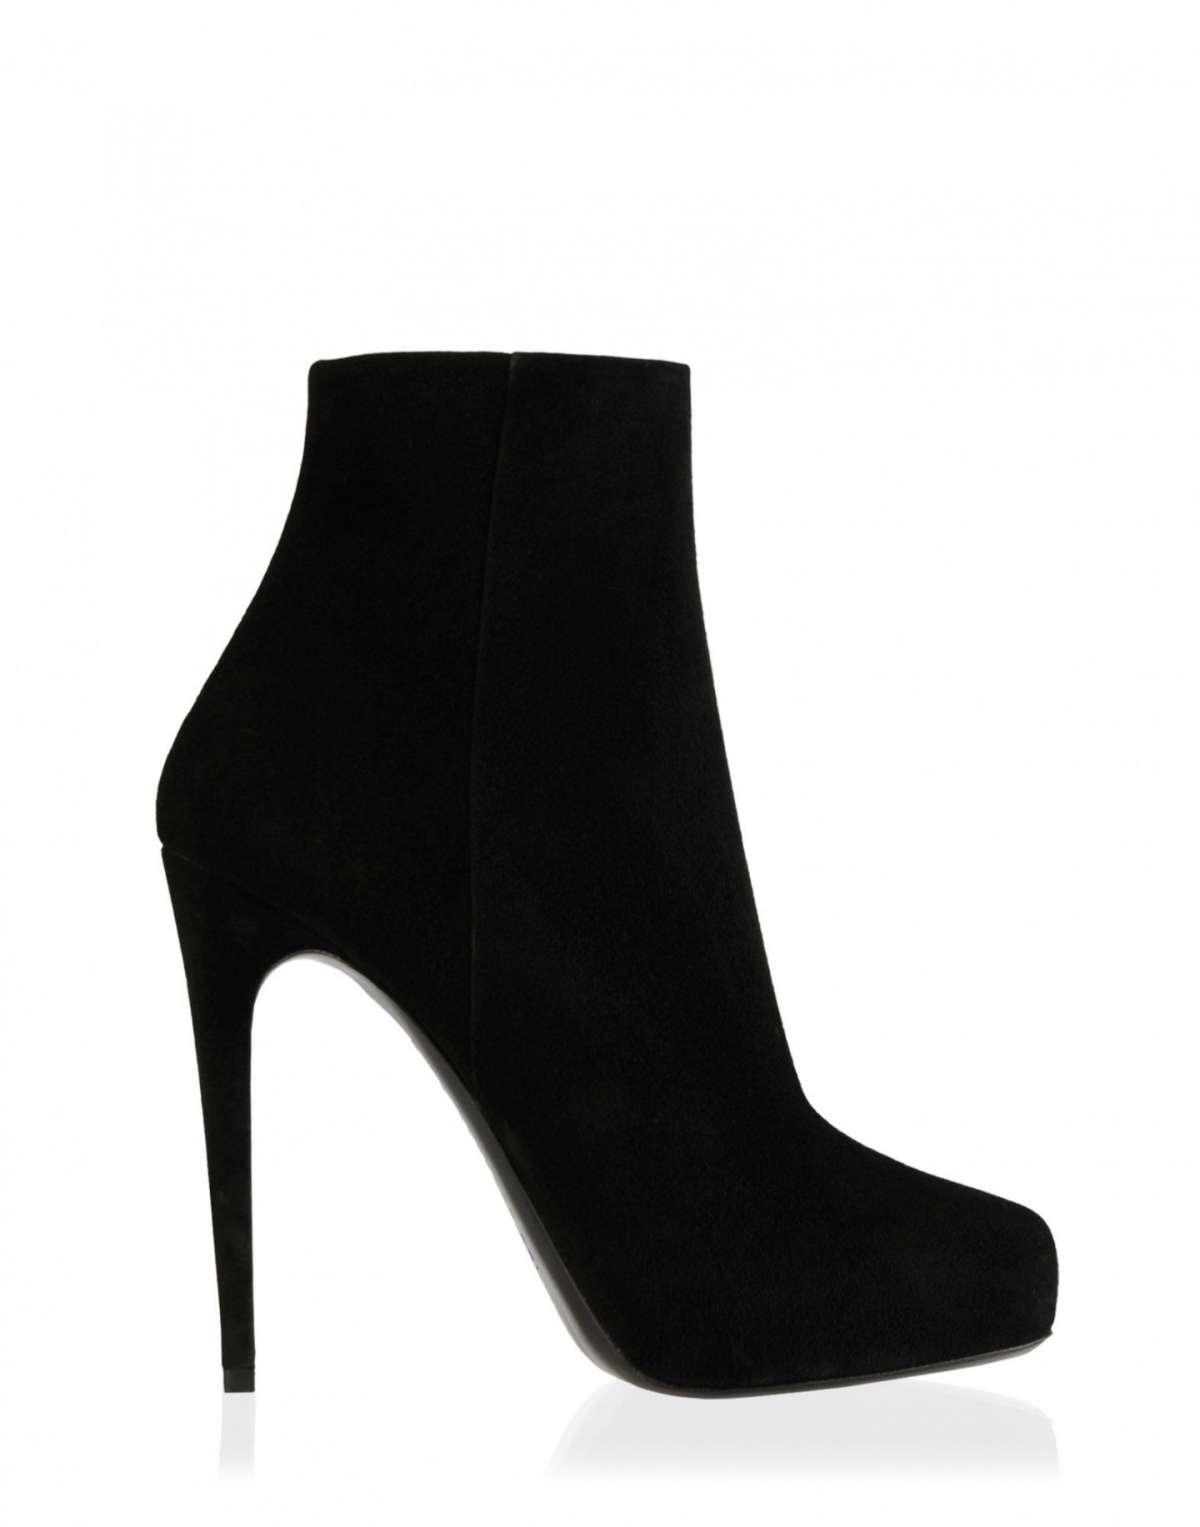 Ankle boot in suede platform